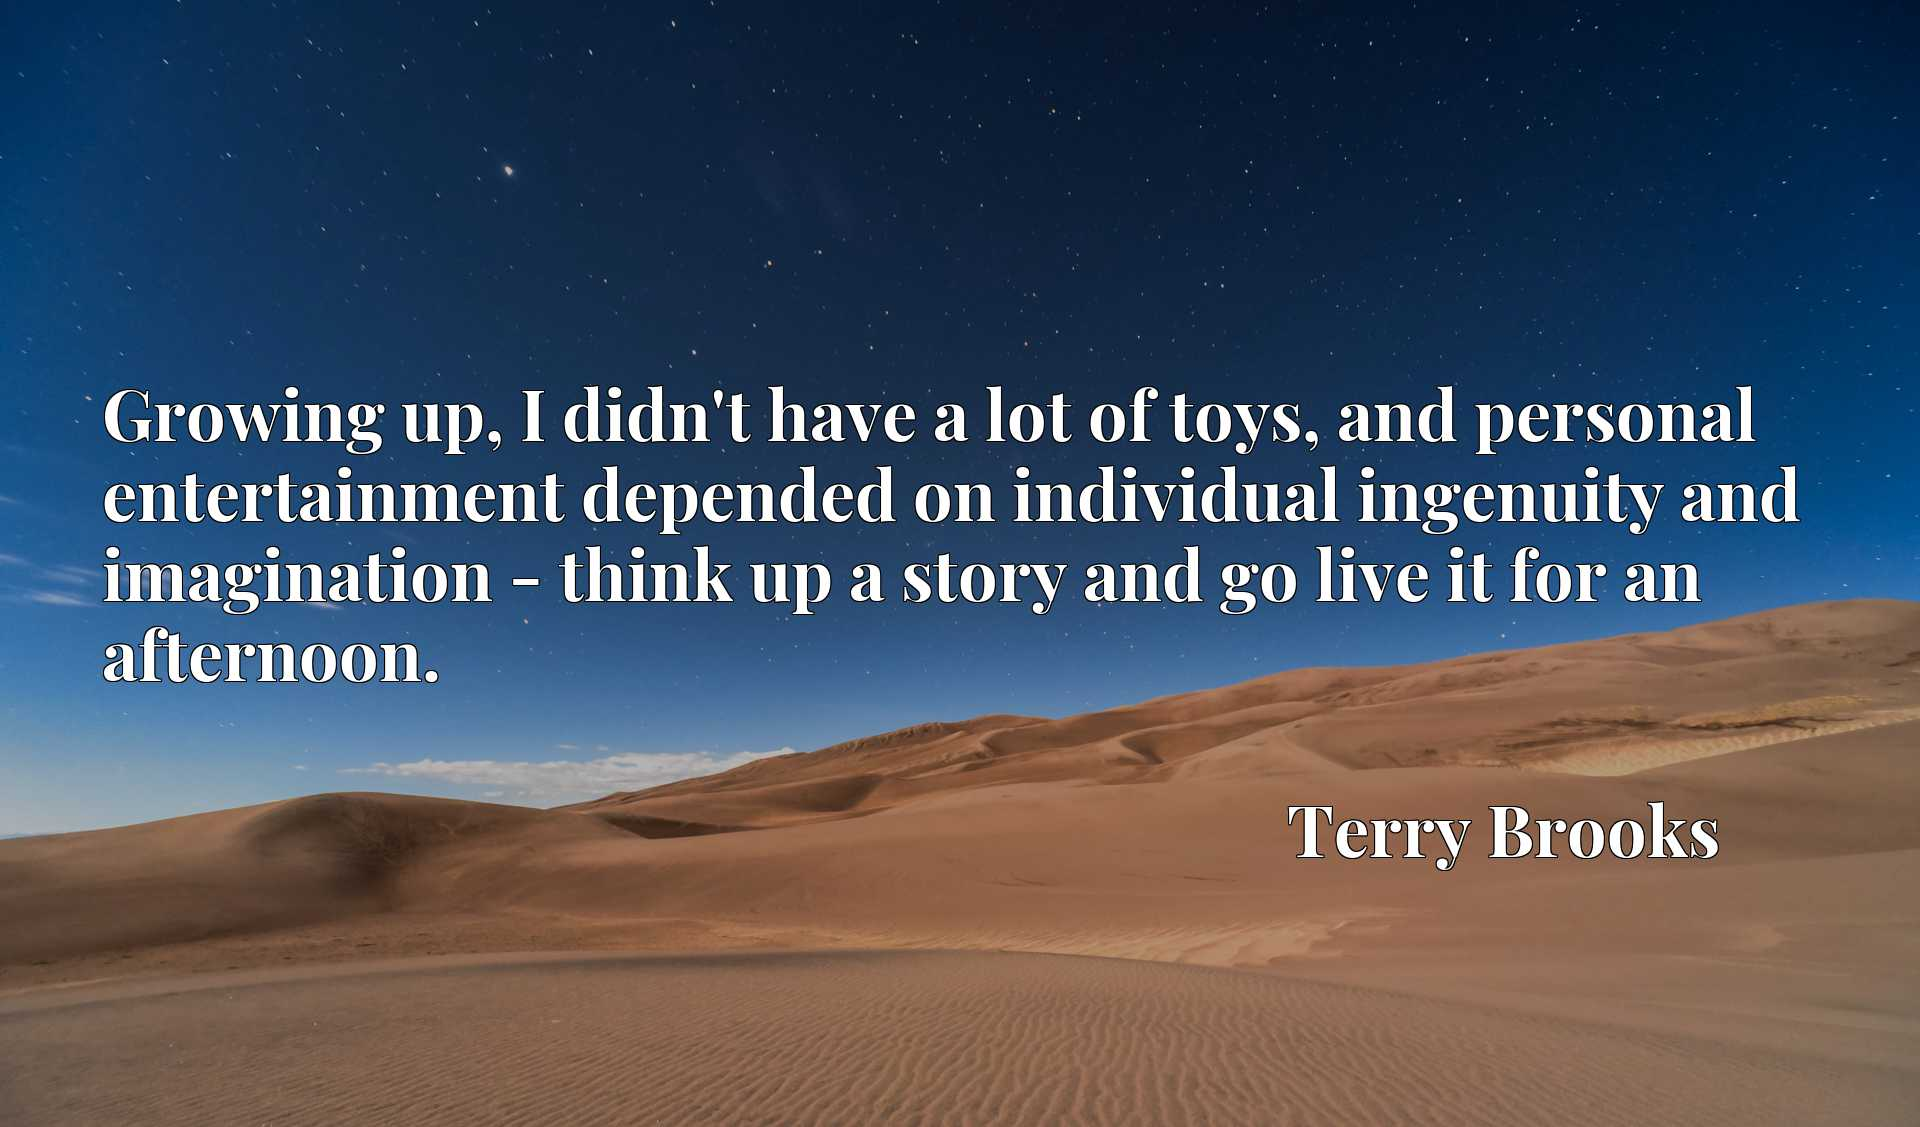 Quote Picture :Growing up, I didn't have a lot of toys, and personal entertainment depended on individual ingenuity and imagination - think up a story and go live it for an afternoon.